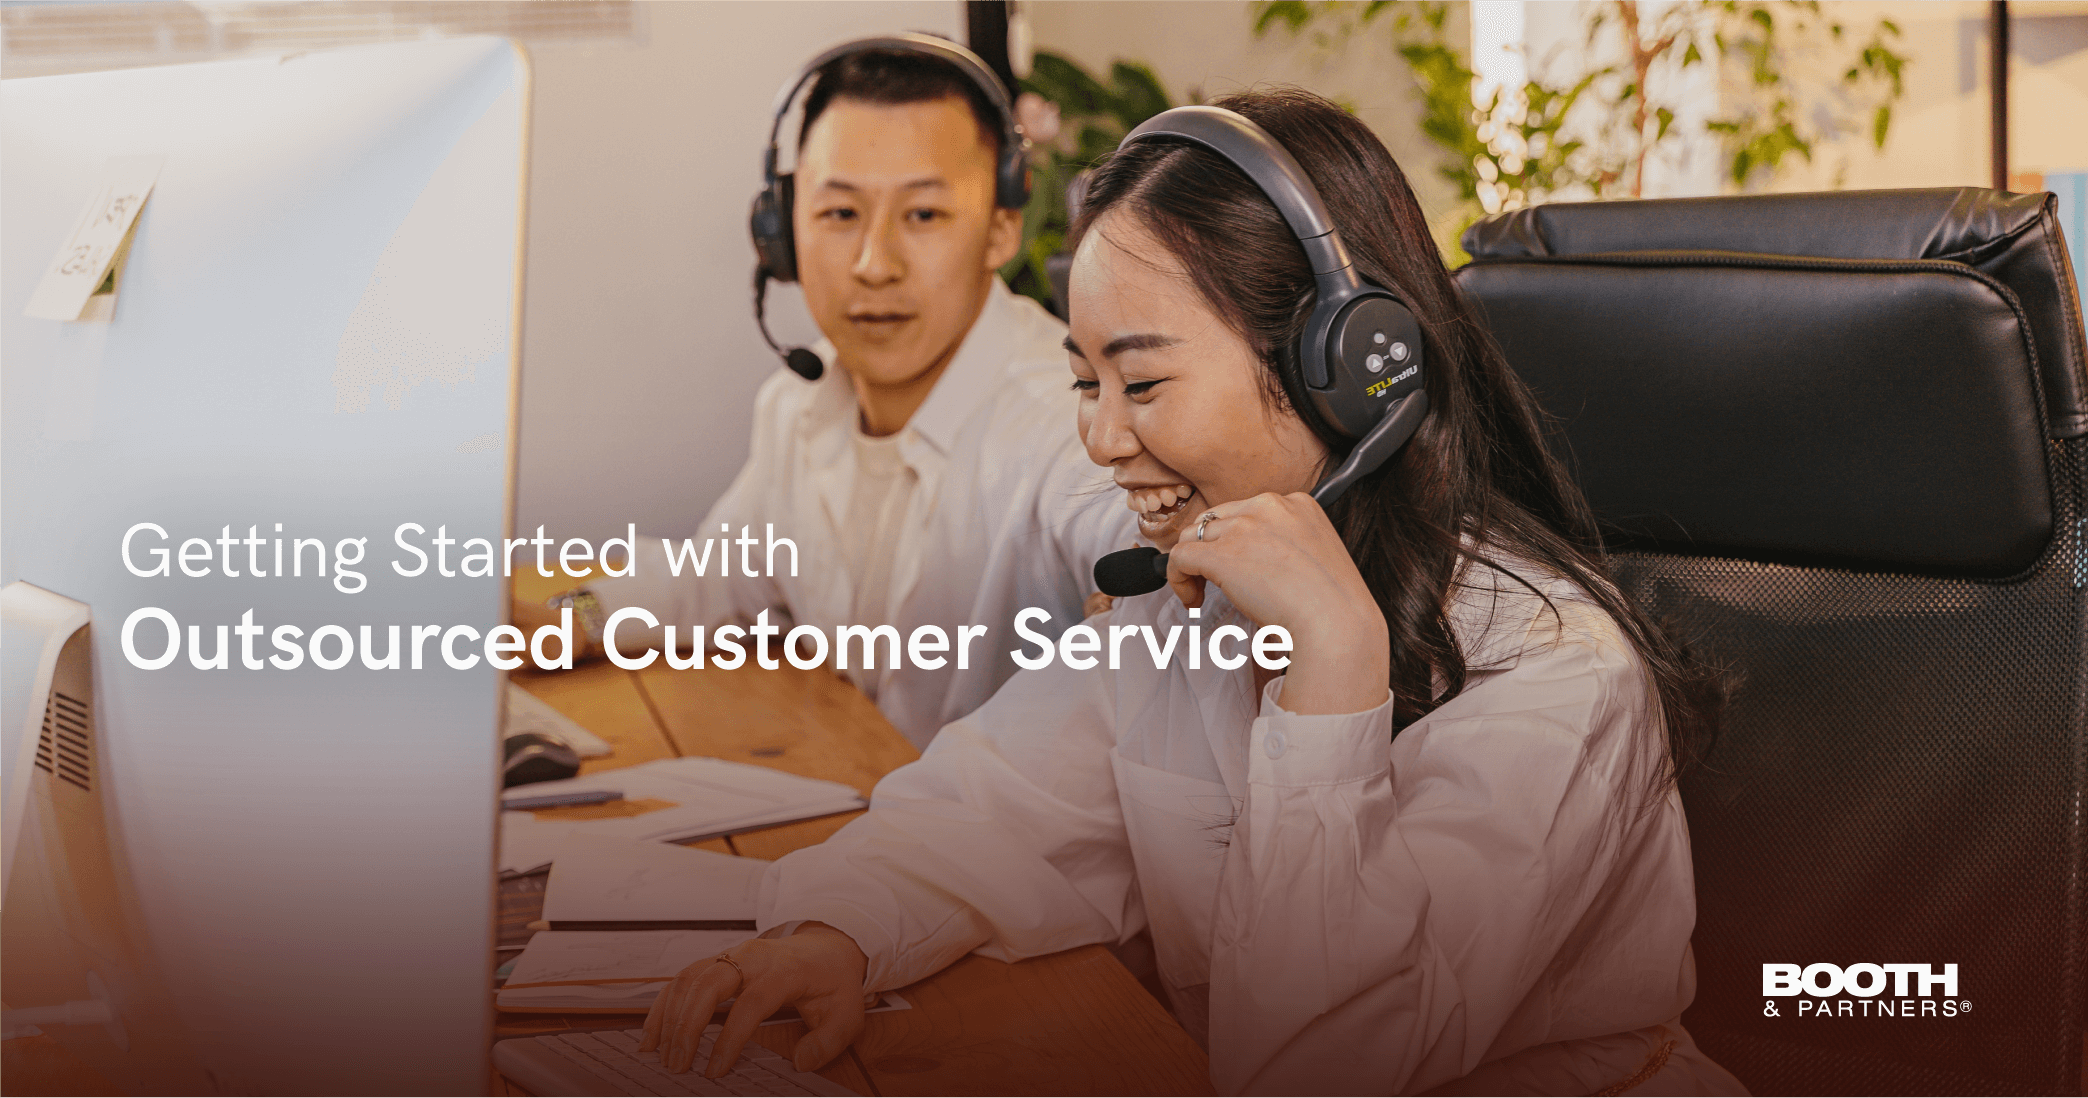 Getting Started with Outsourced Customer Service